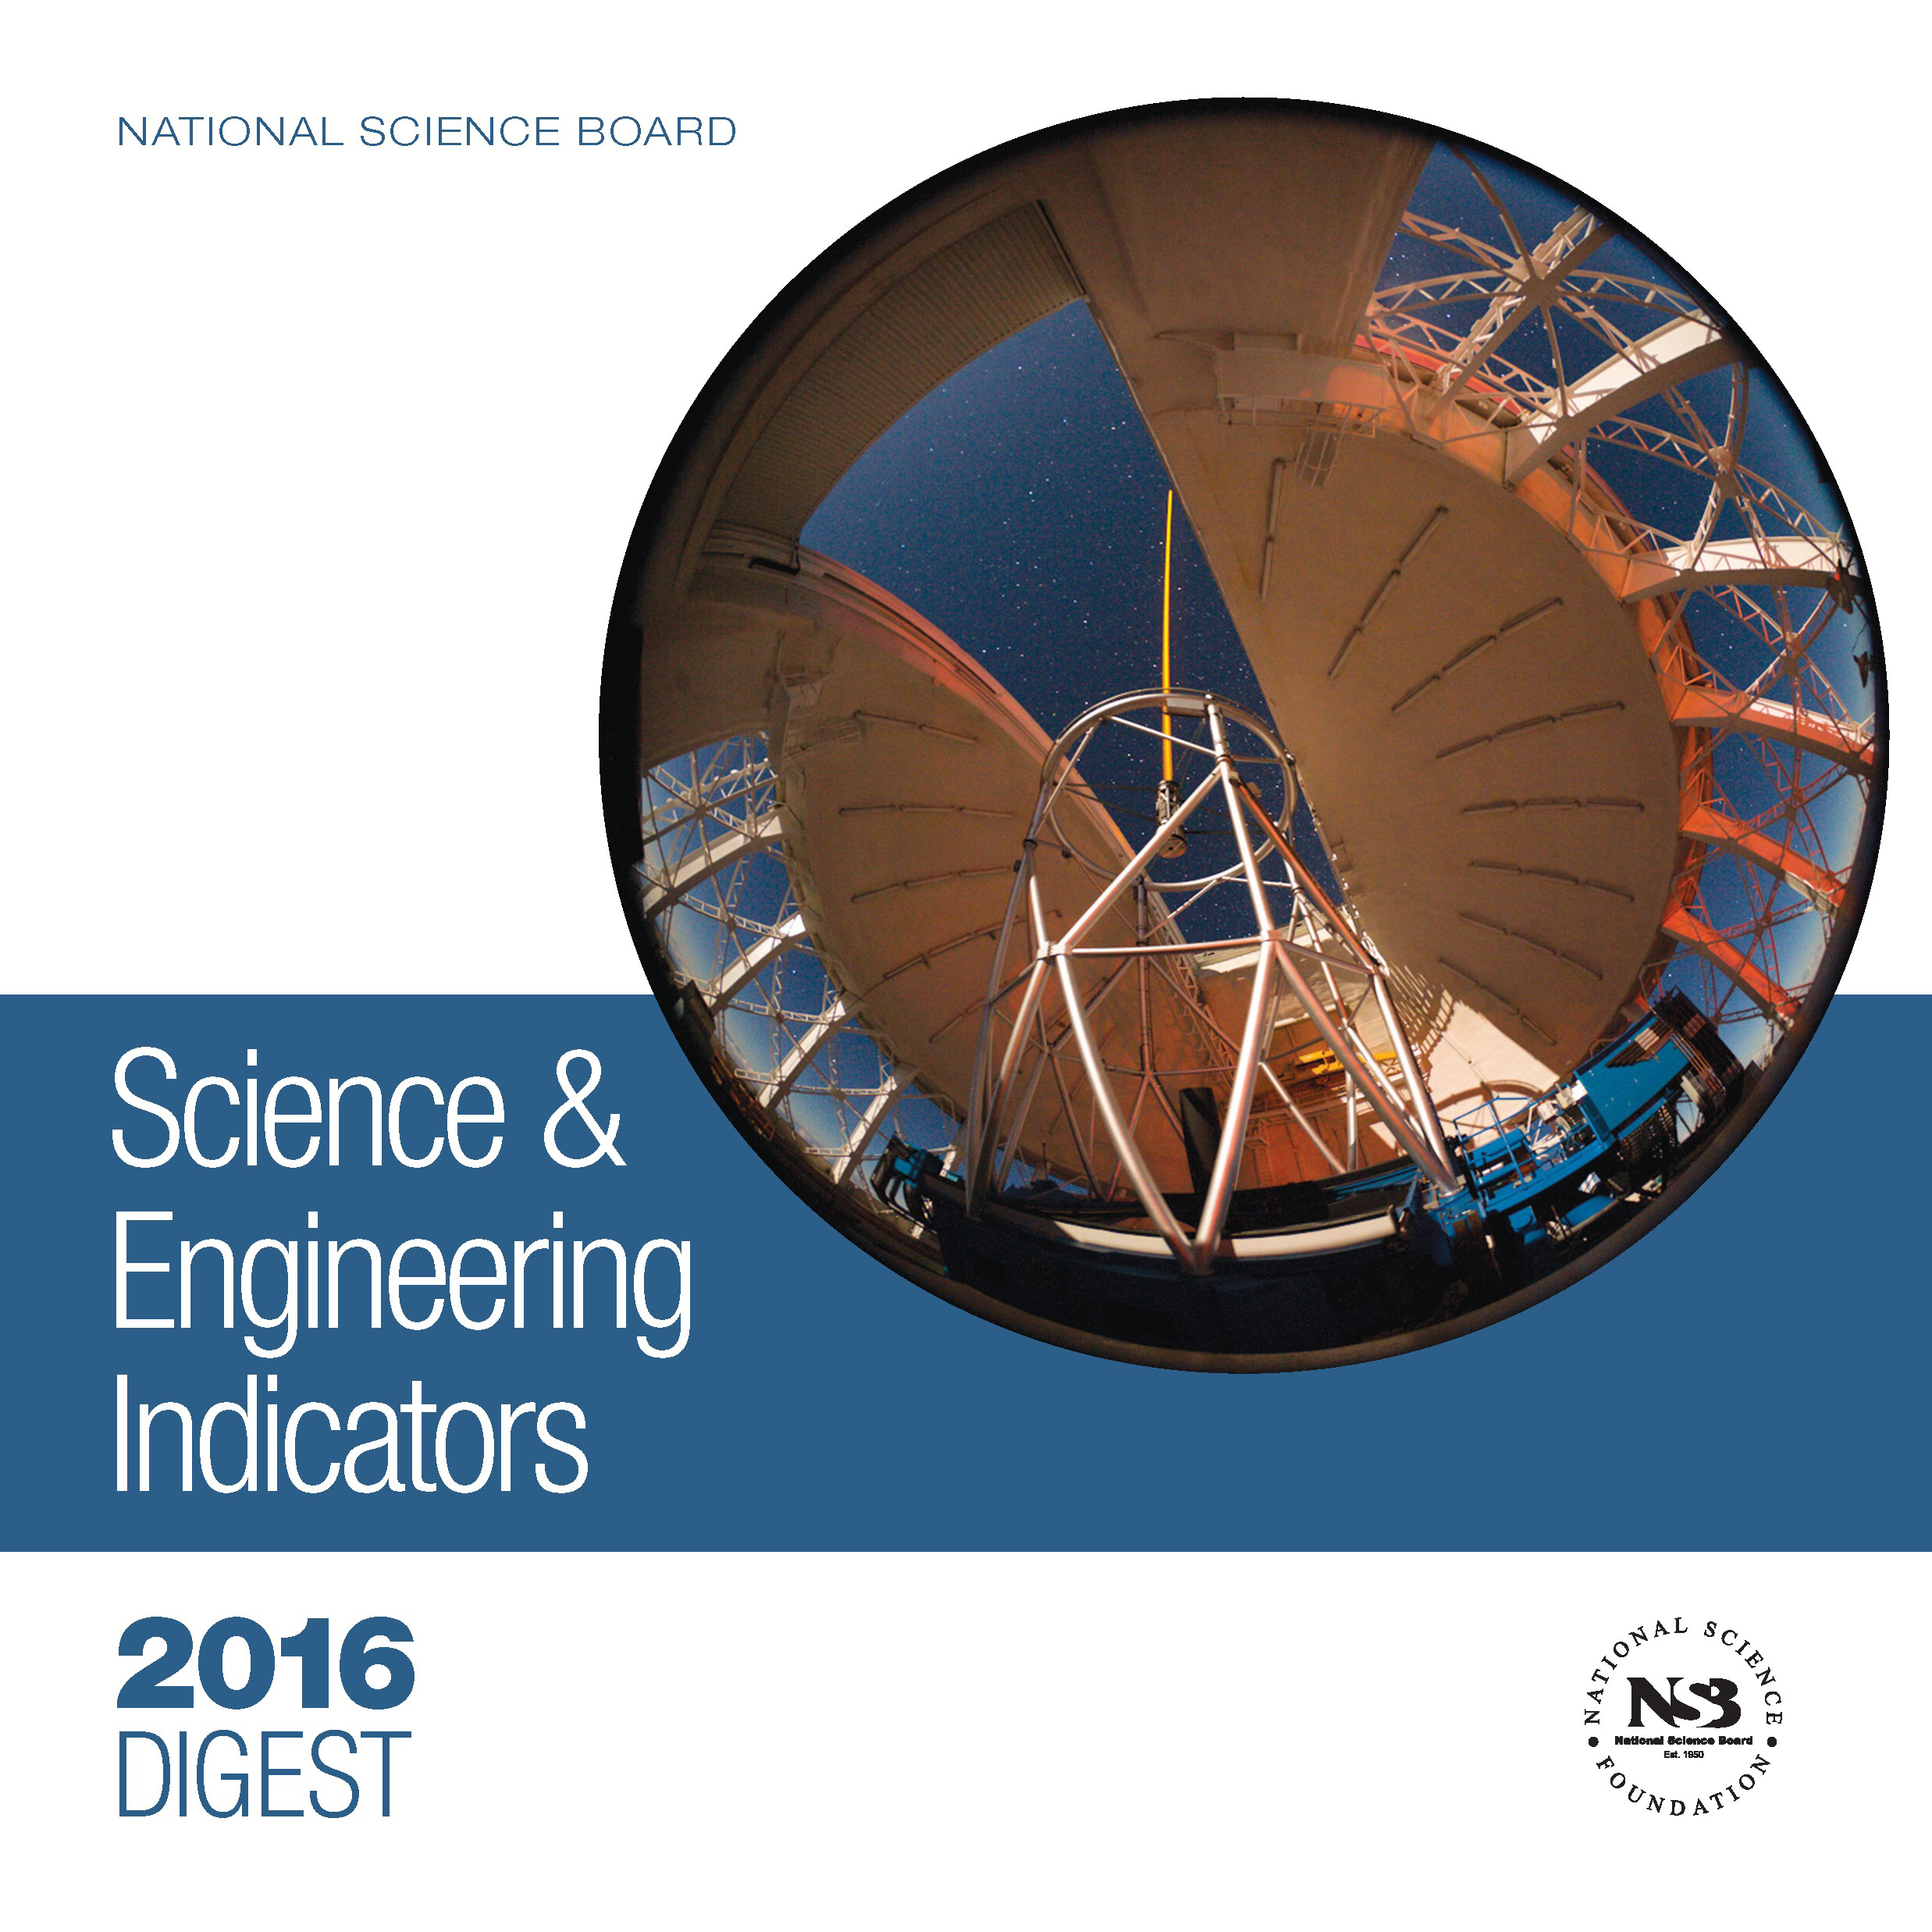 Cover image of nsb20162